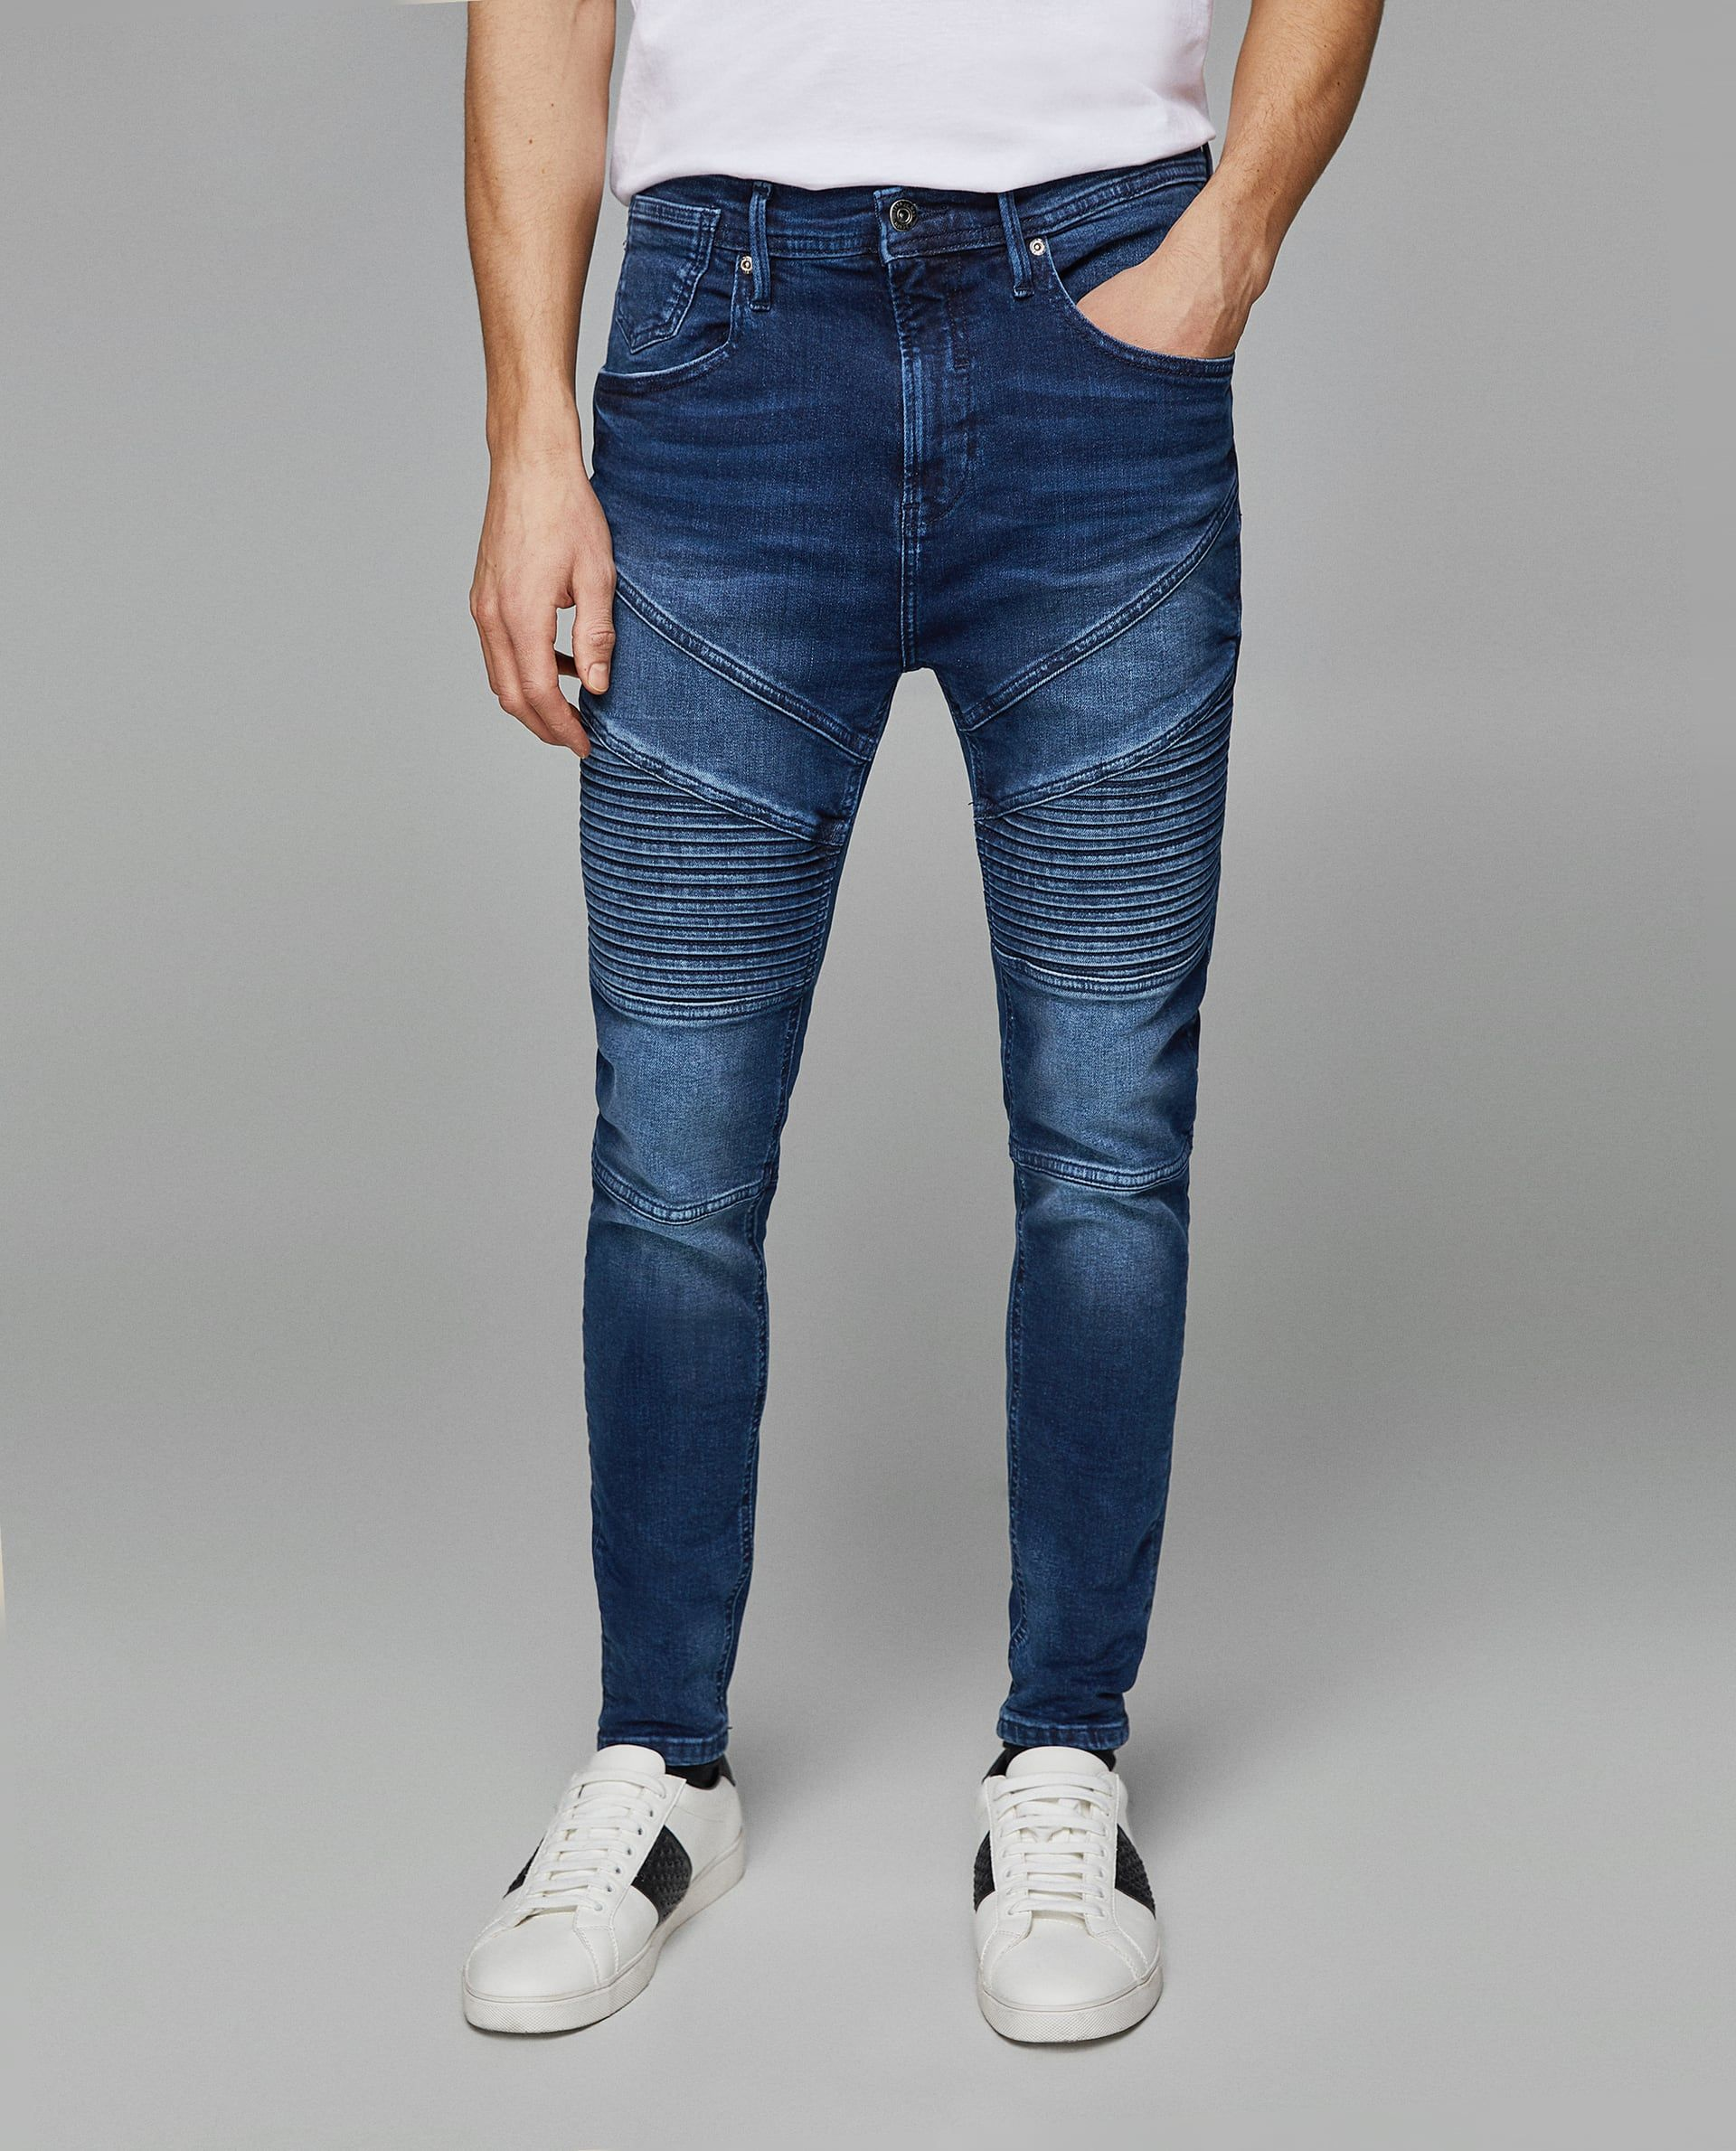 08c7ff6308930 BIKER JEANS WITH KNEE PATCHES | men s fashion | Biker jeans, Patched ...